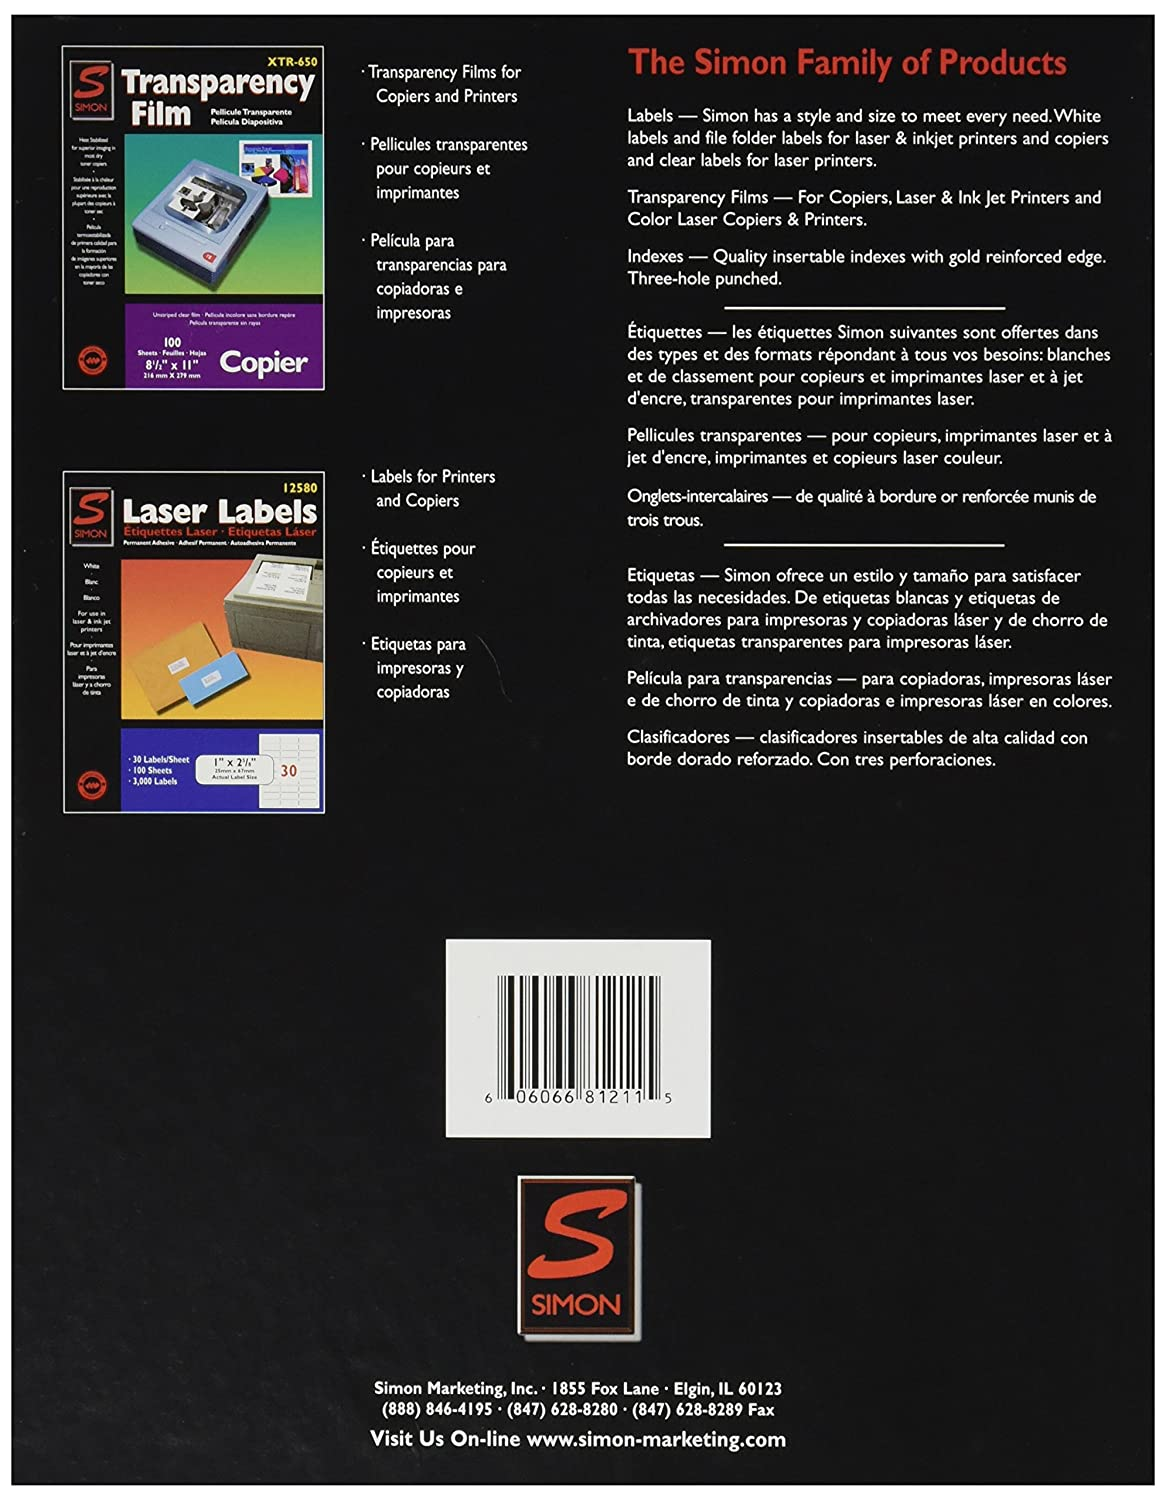 Amazon.com : Simon 81211 Copier labels, 8 1/2 x 11, white, 100 per box : Office Products